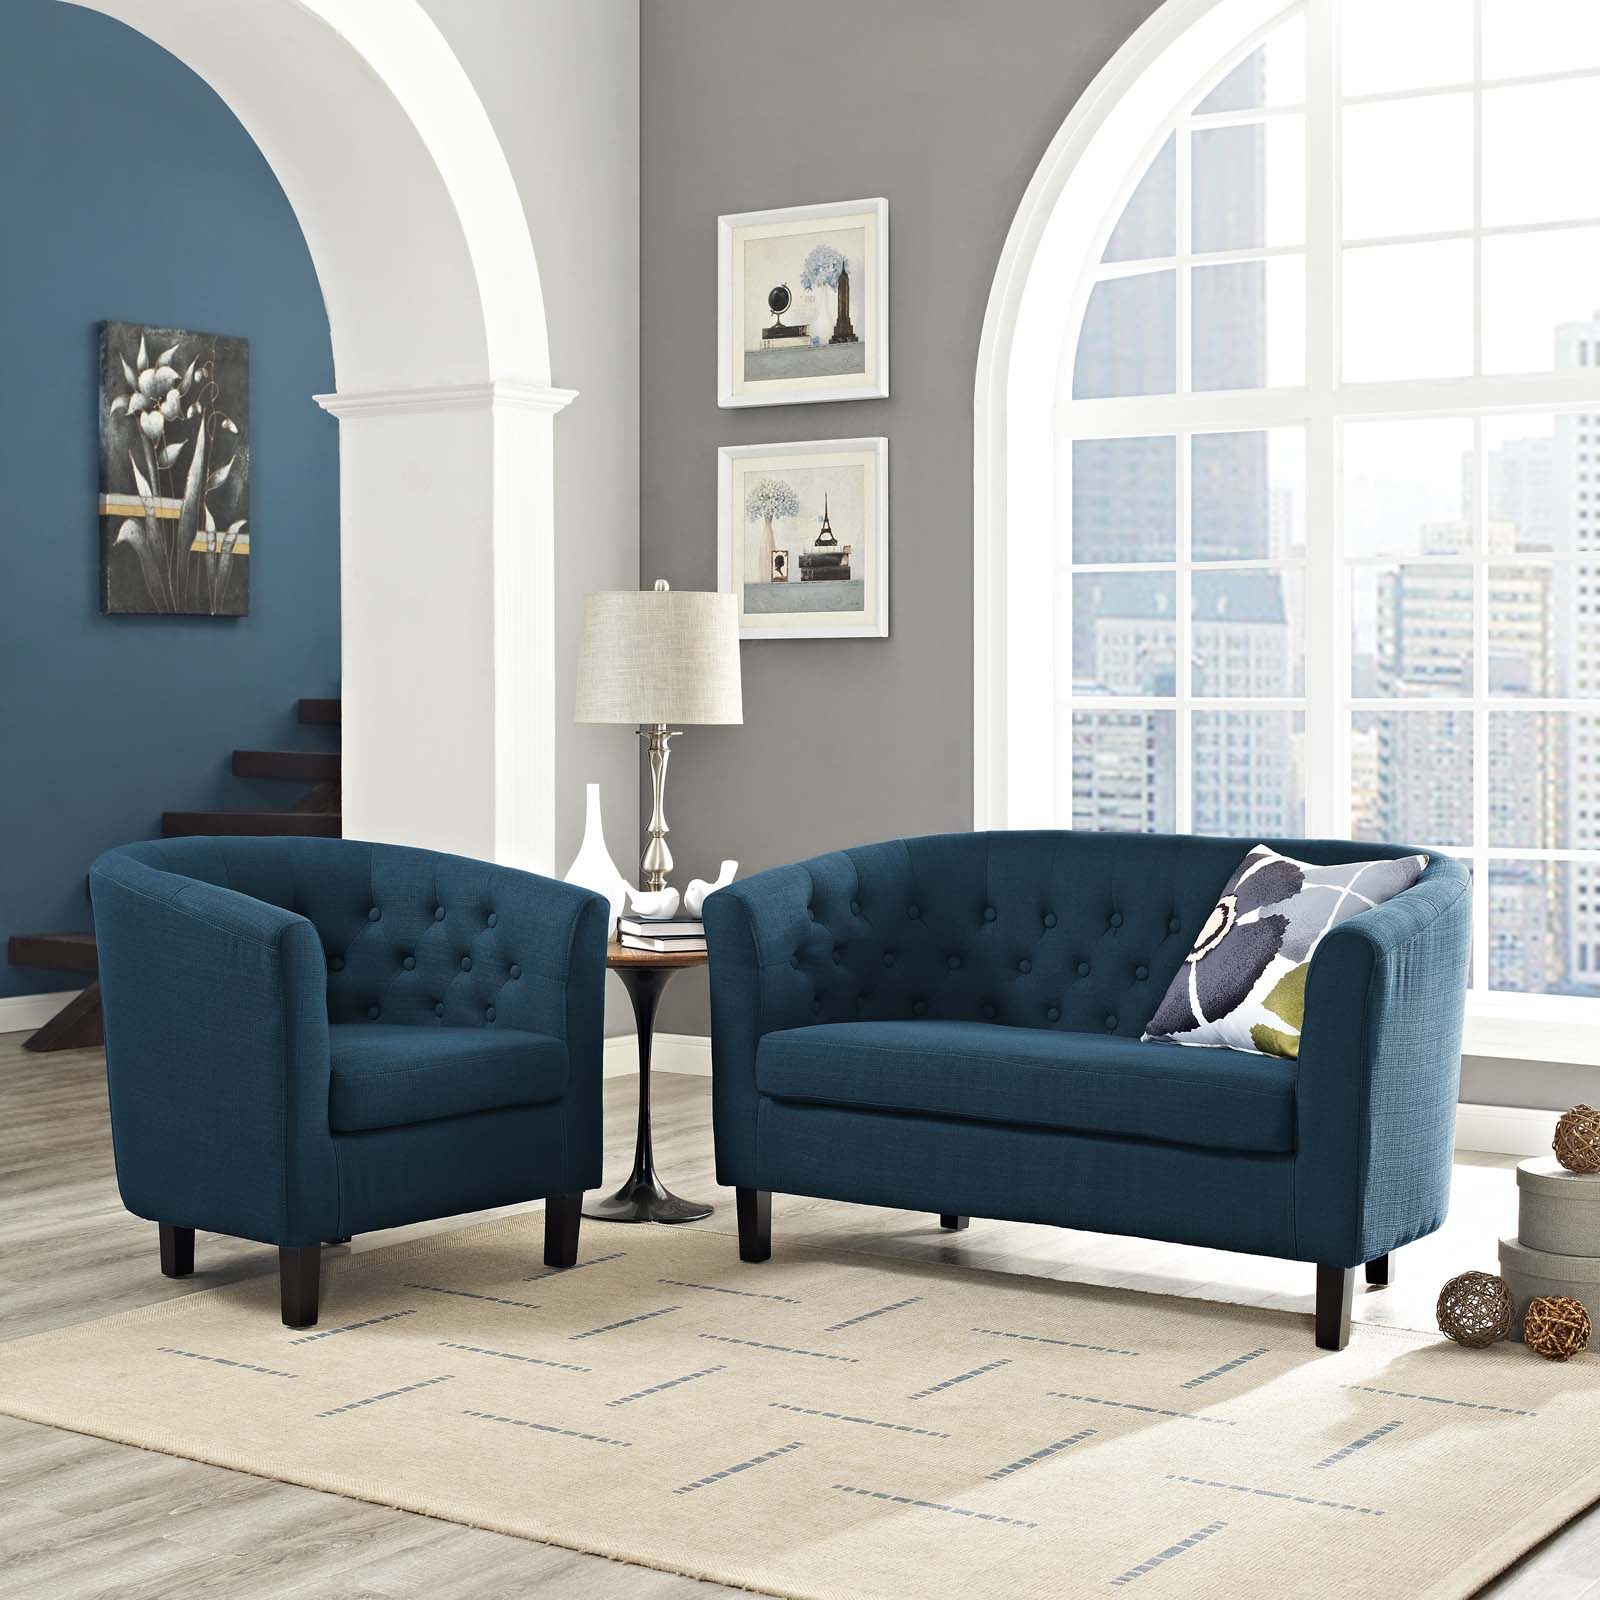 Modway Prospect 2 Piece Upholstered Fabric Loveseat and Armchair Set, Multiple Colors